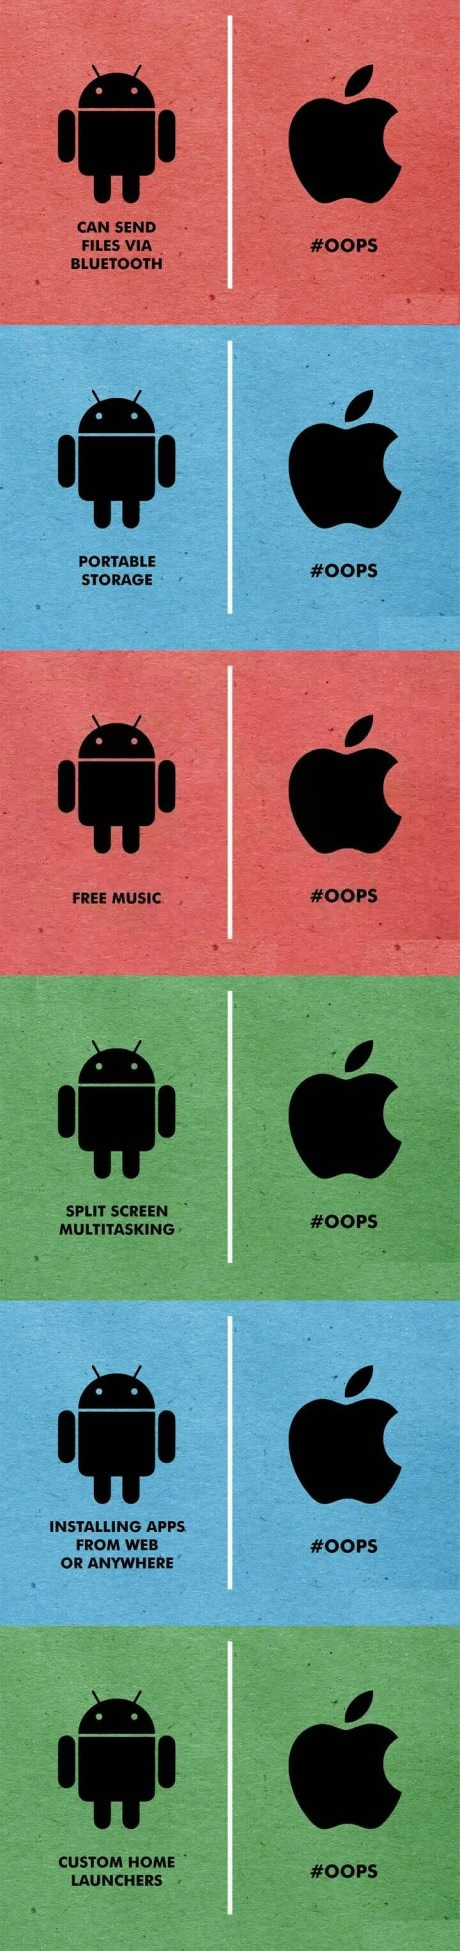 apple-vs-android-features